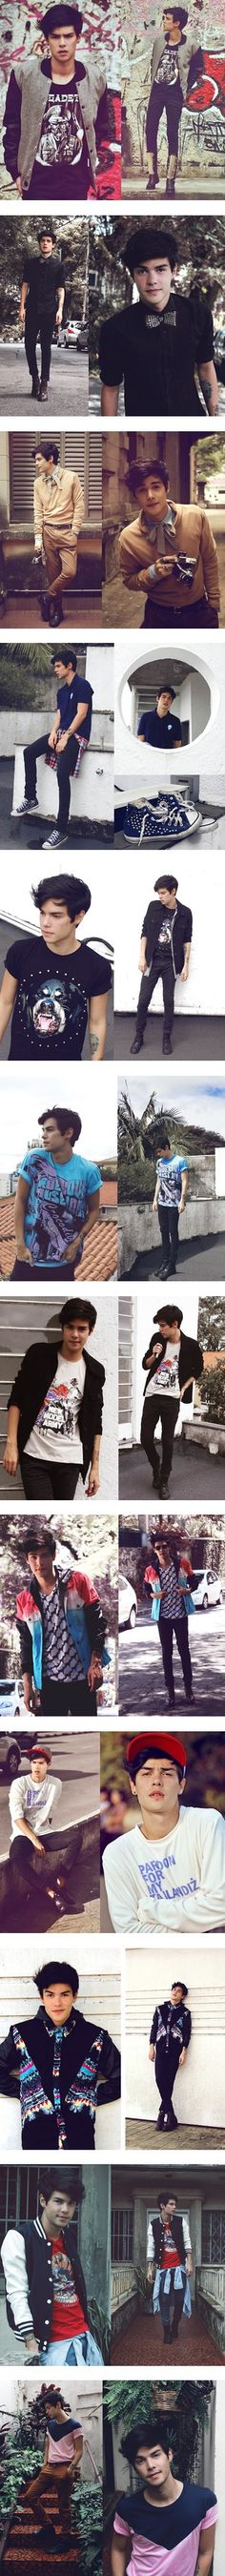 """Vini Uehara!!! 3 2 3"" by belen-583 ❤ liked on Polyvore"